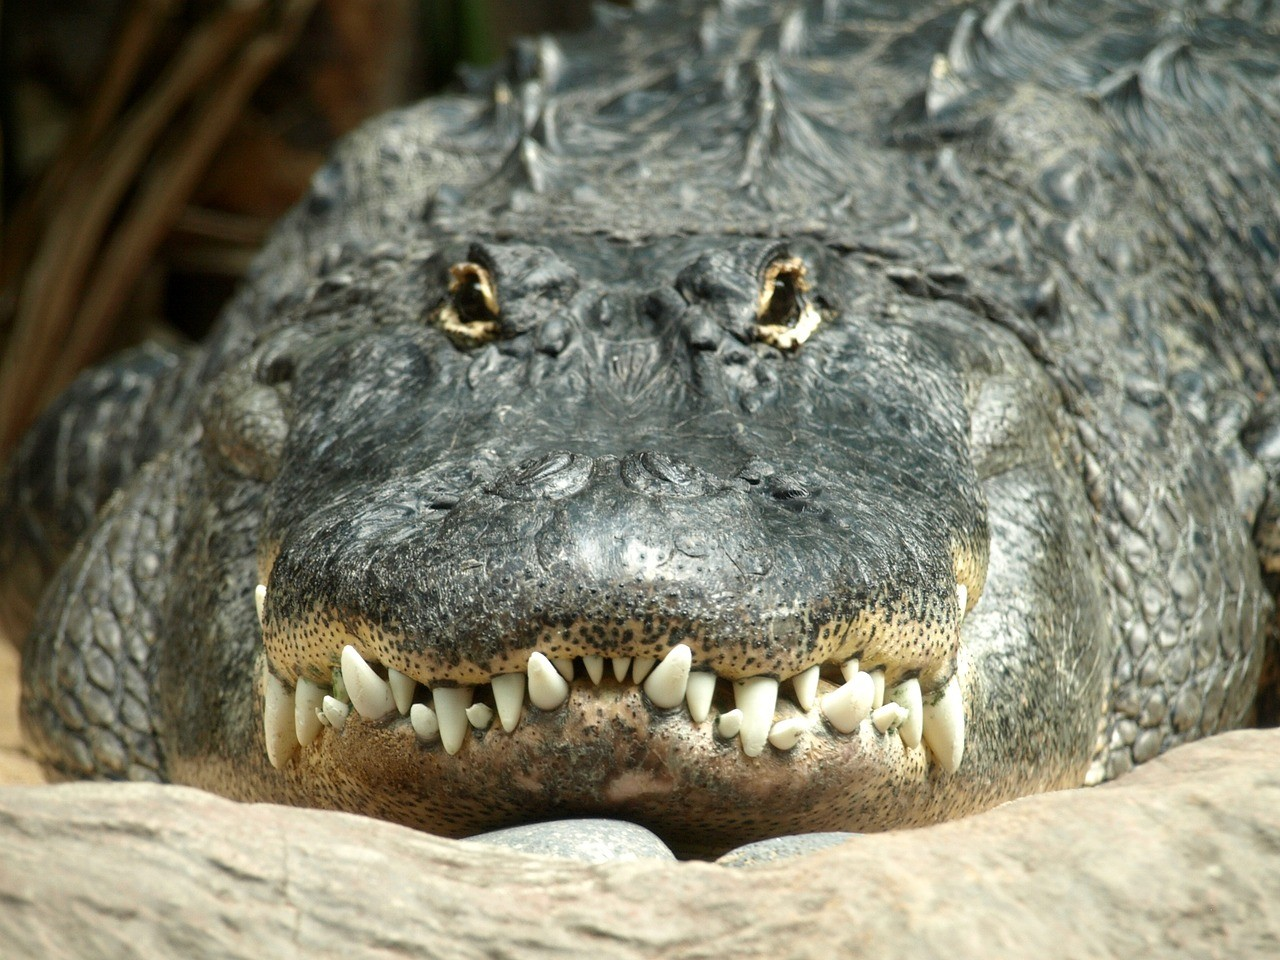 Alligators Are Ancient: New Studies Show They Haven't Evolved for Over 8 Million Years